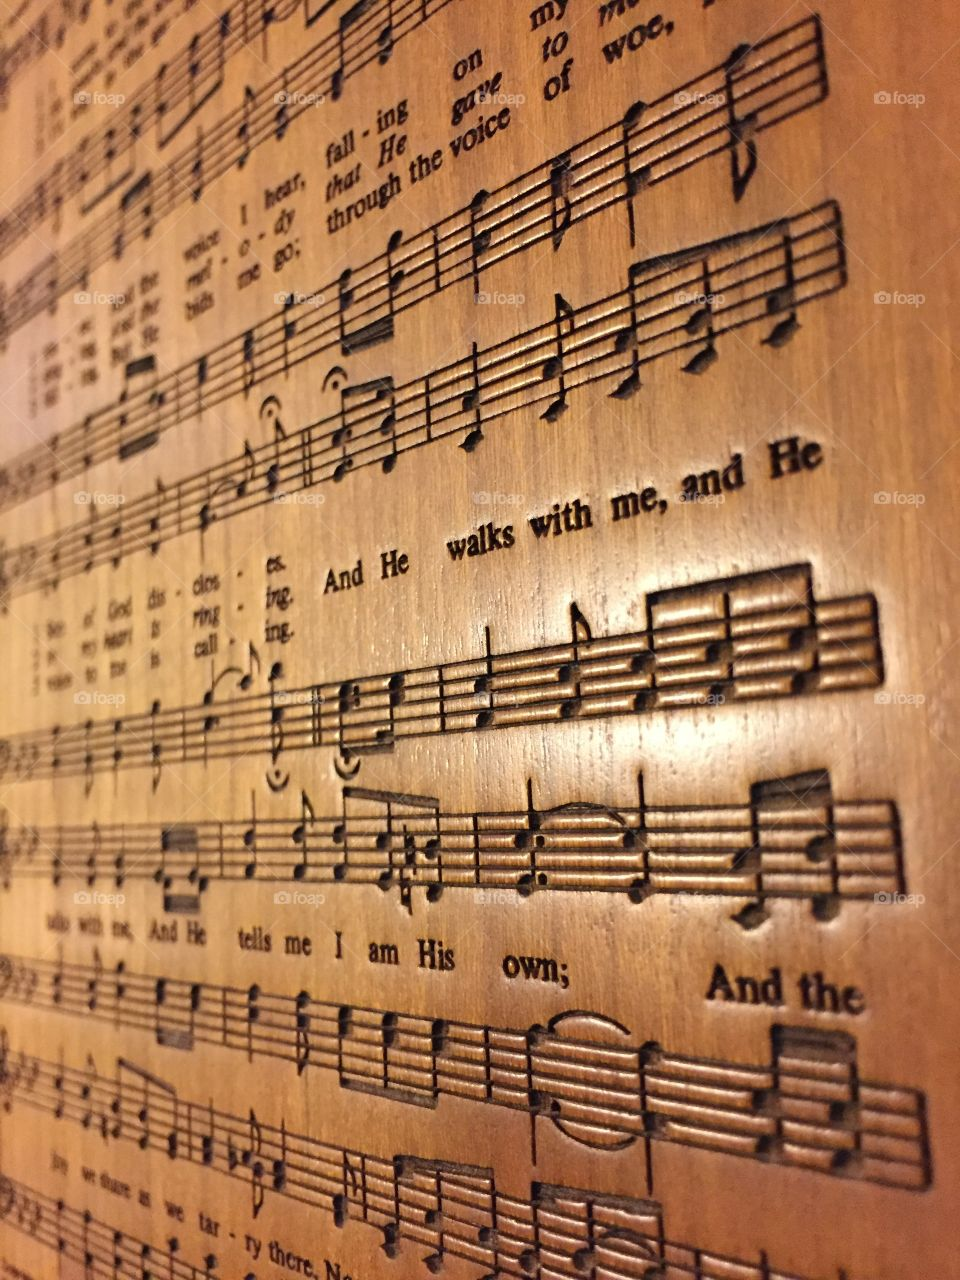 Engraved music